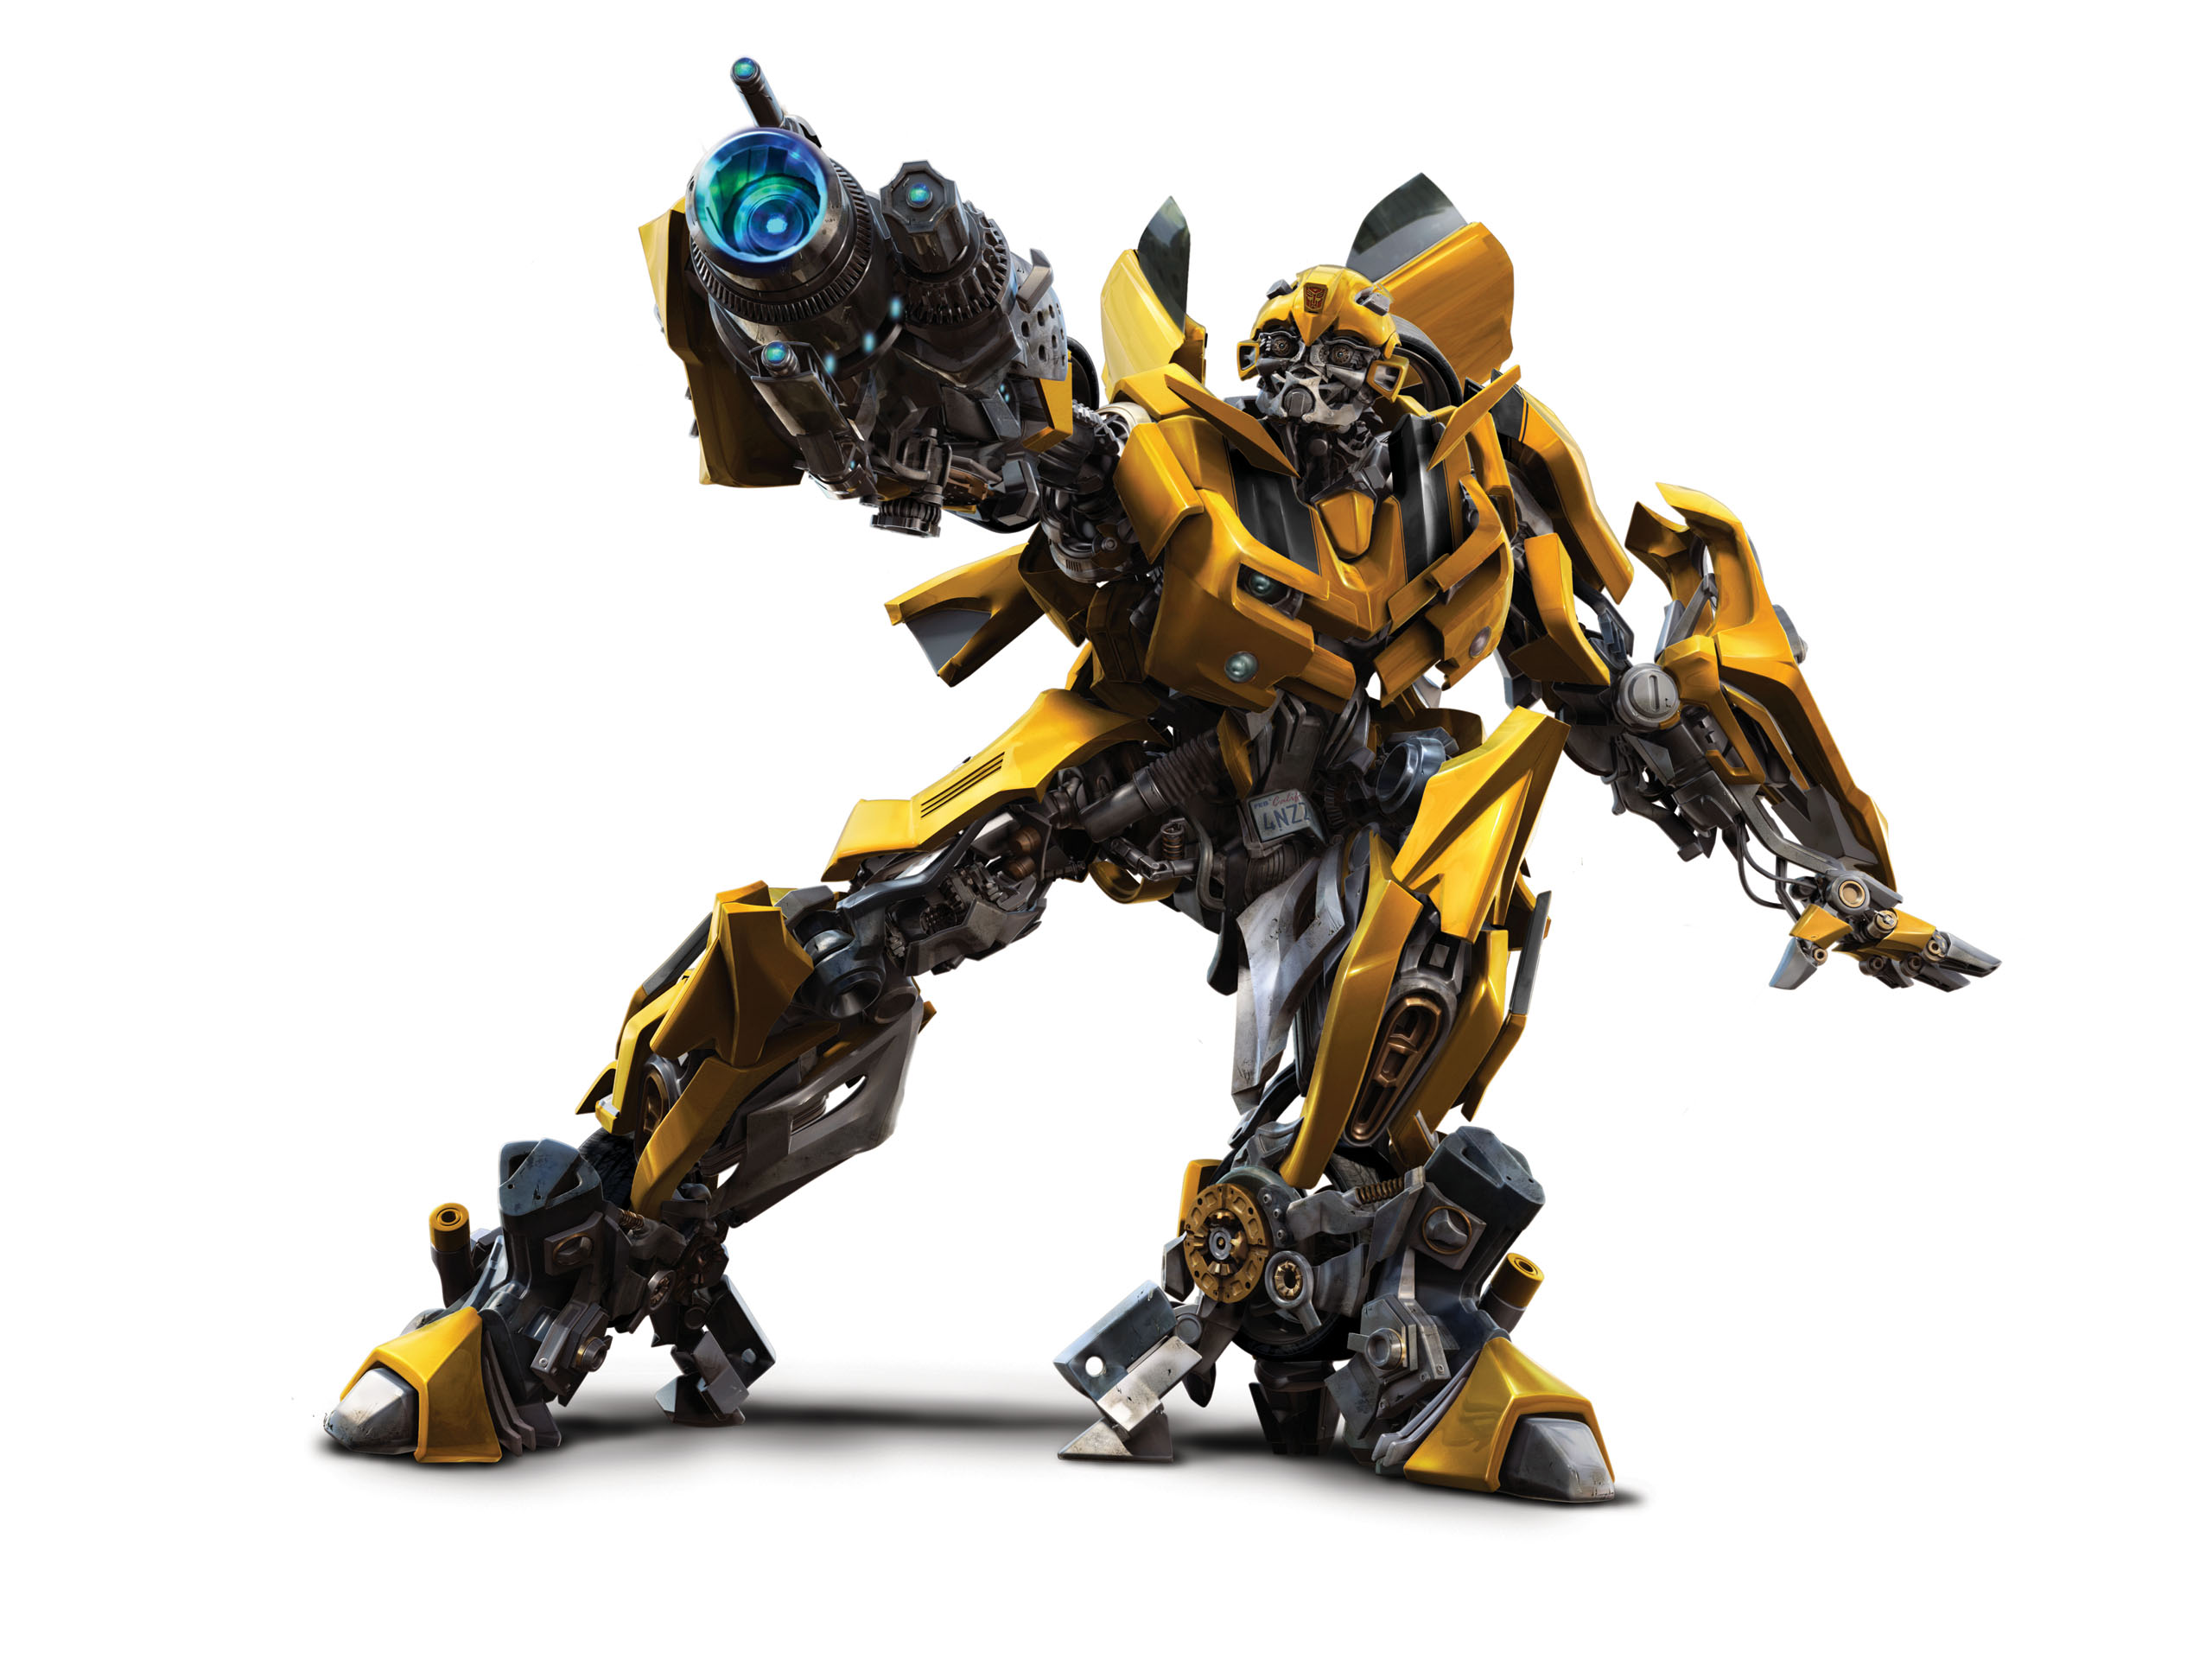 Image - Transformers-bumble-bee.jpg - Transformersbumble bee transformer